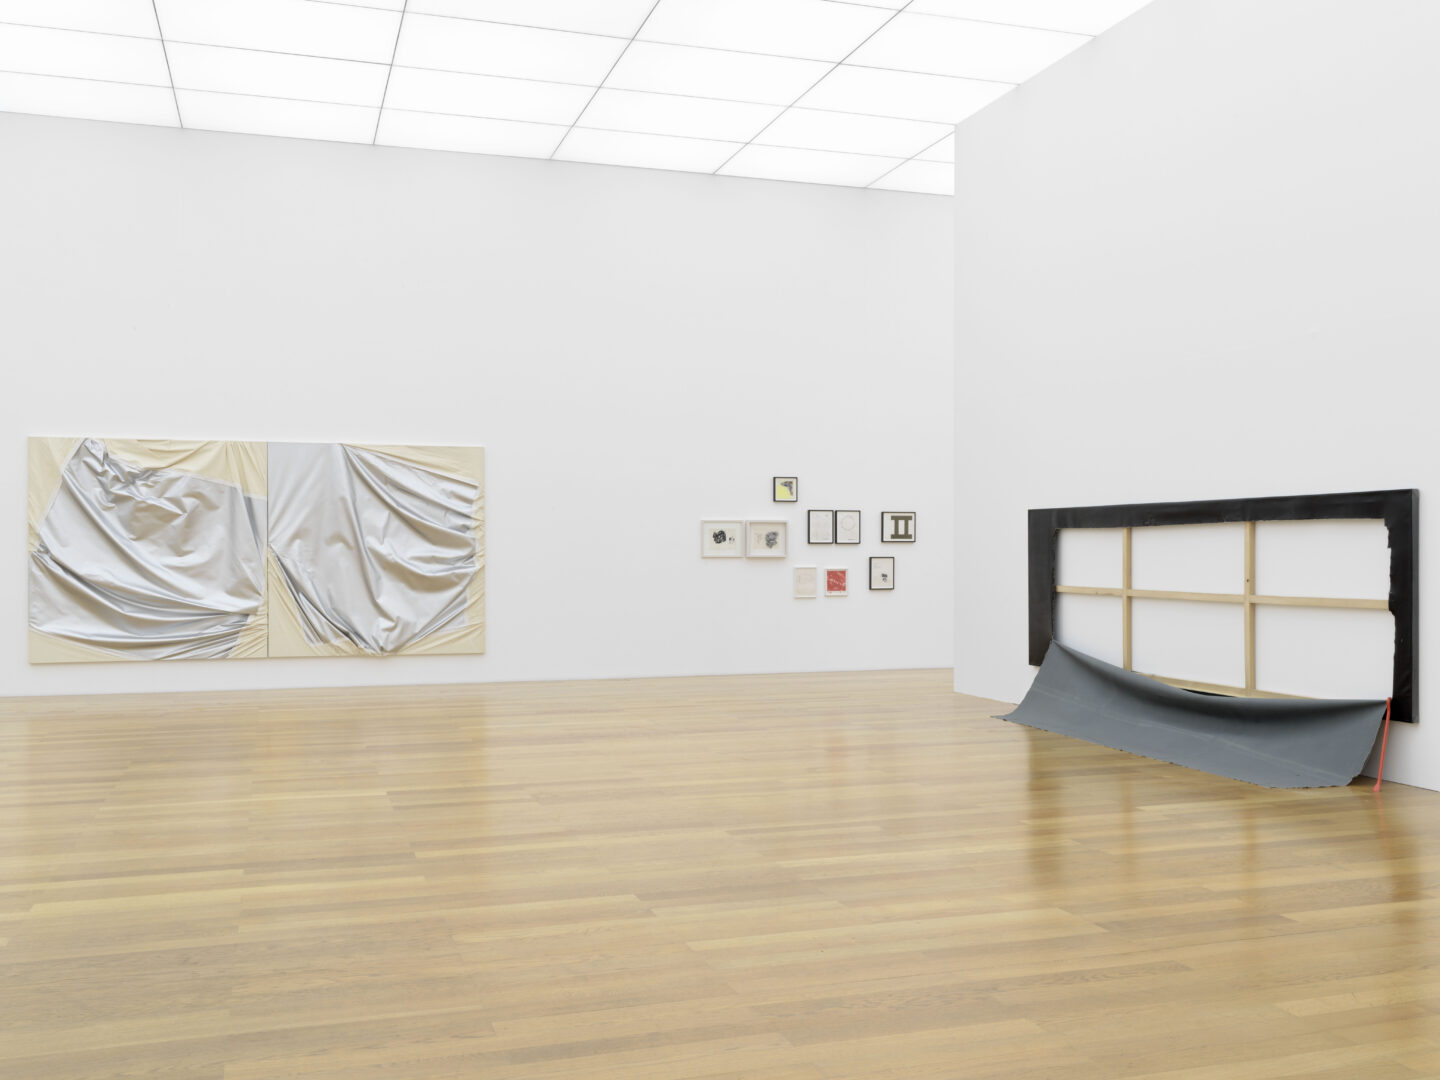 KMLExhibition View Steven Parrino Soloshow «Nihilism Is Love» at Kunstmuseum Liechtenstein, Liechtenstein, 2020 / Photo: Stefan Altenburger / © Kunstmuseum Liechtenstein / Courtesy: the artist and Kunstmuseum Liechtenstein_200217_0106